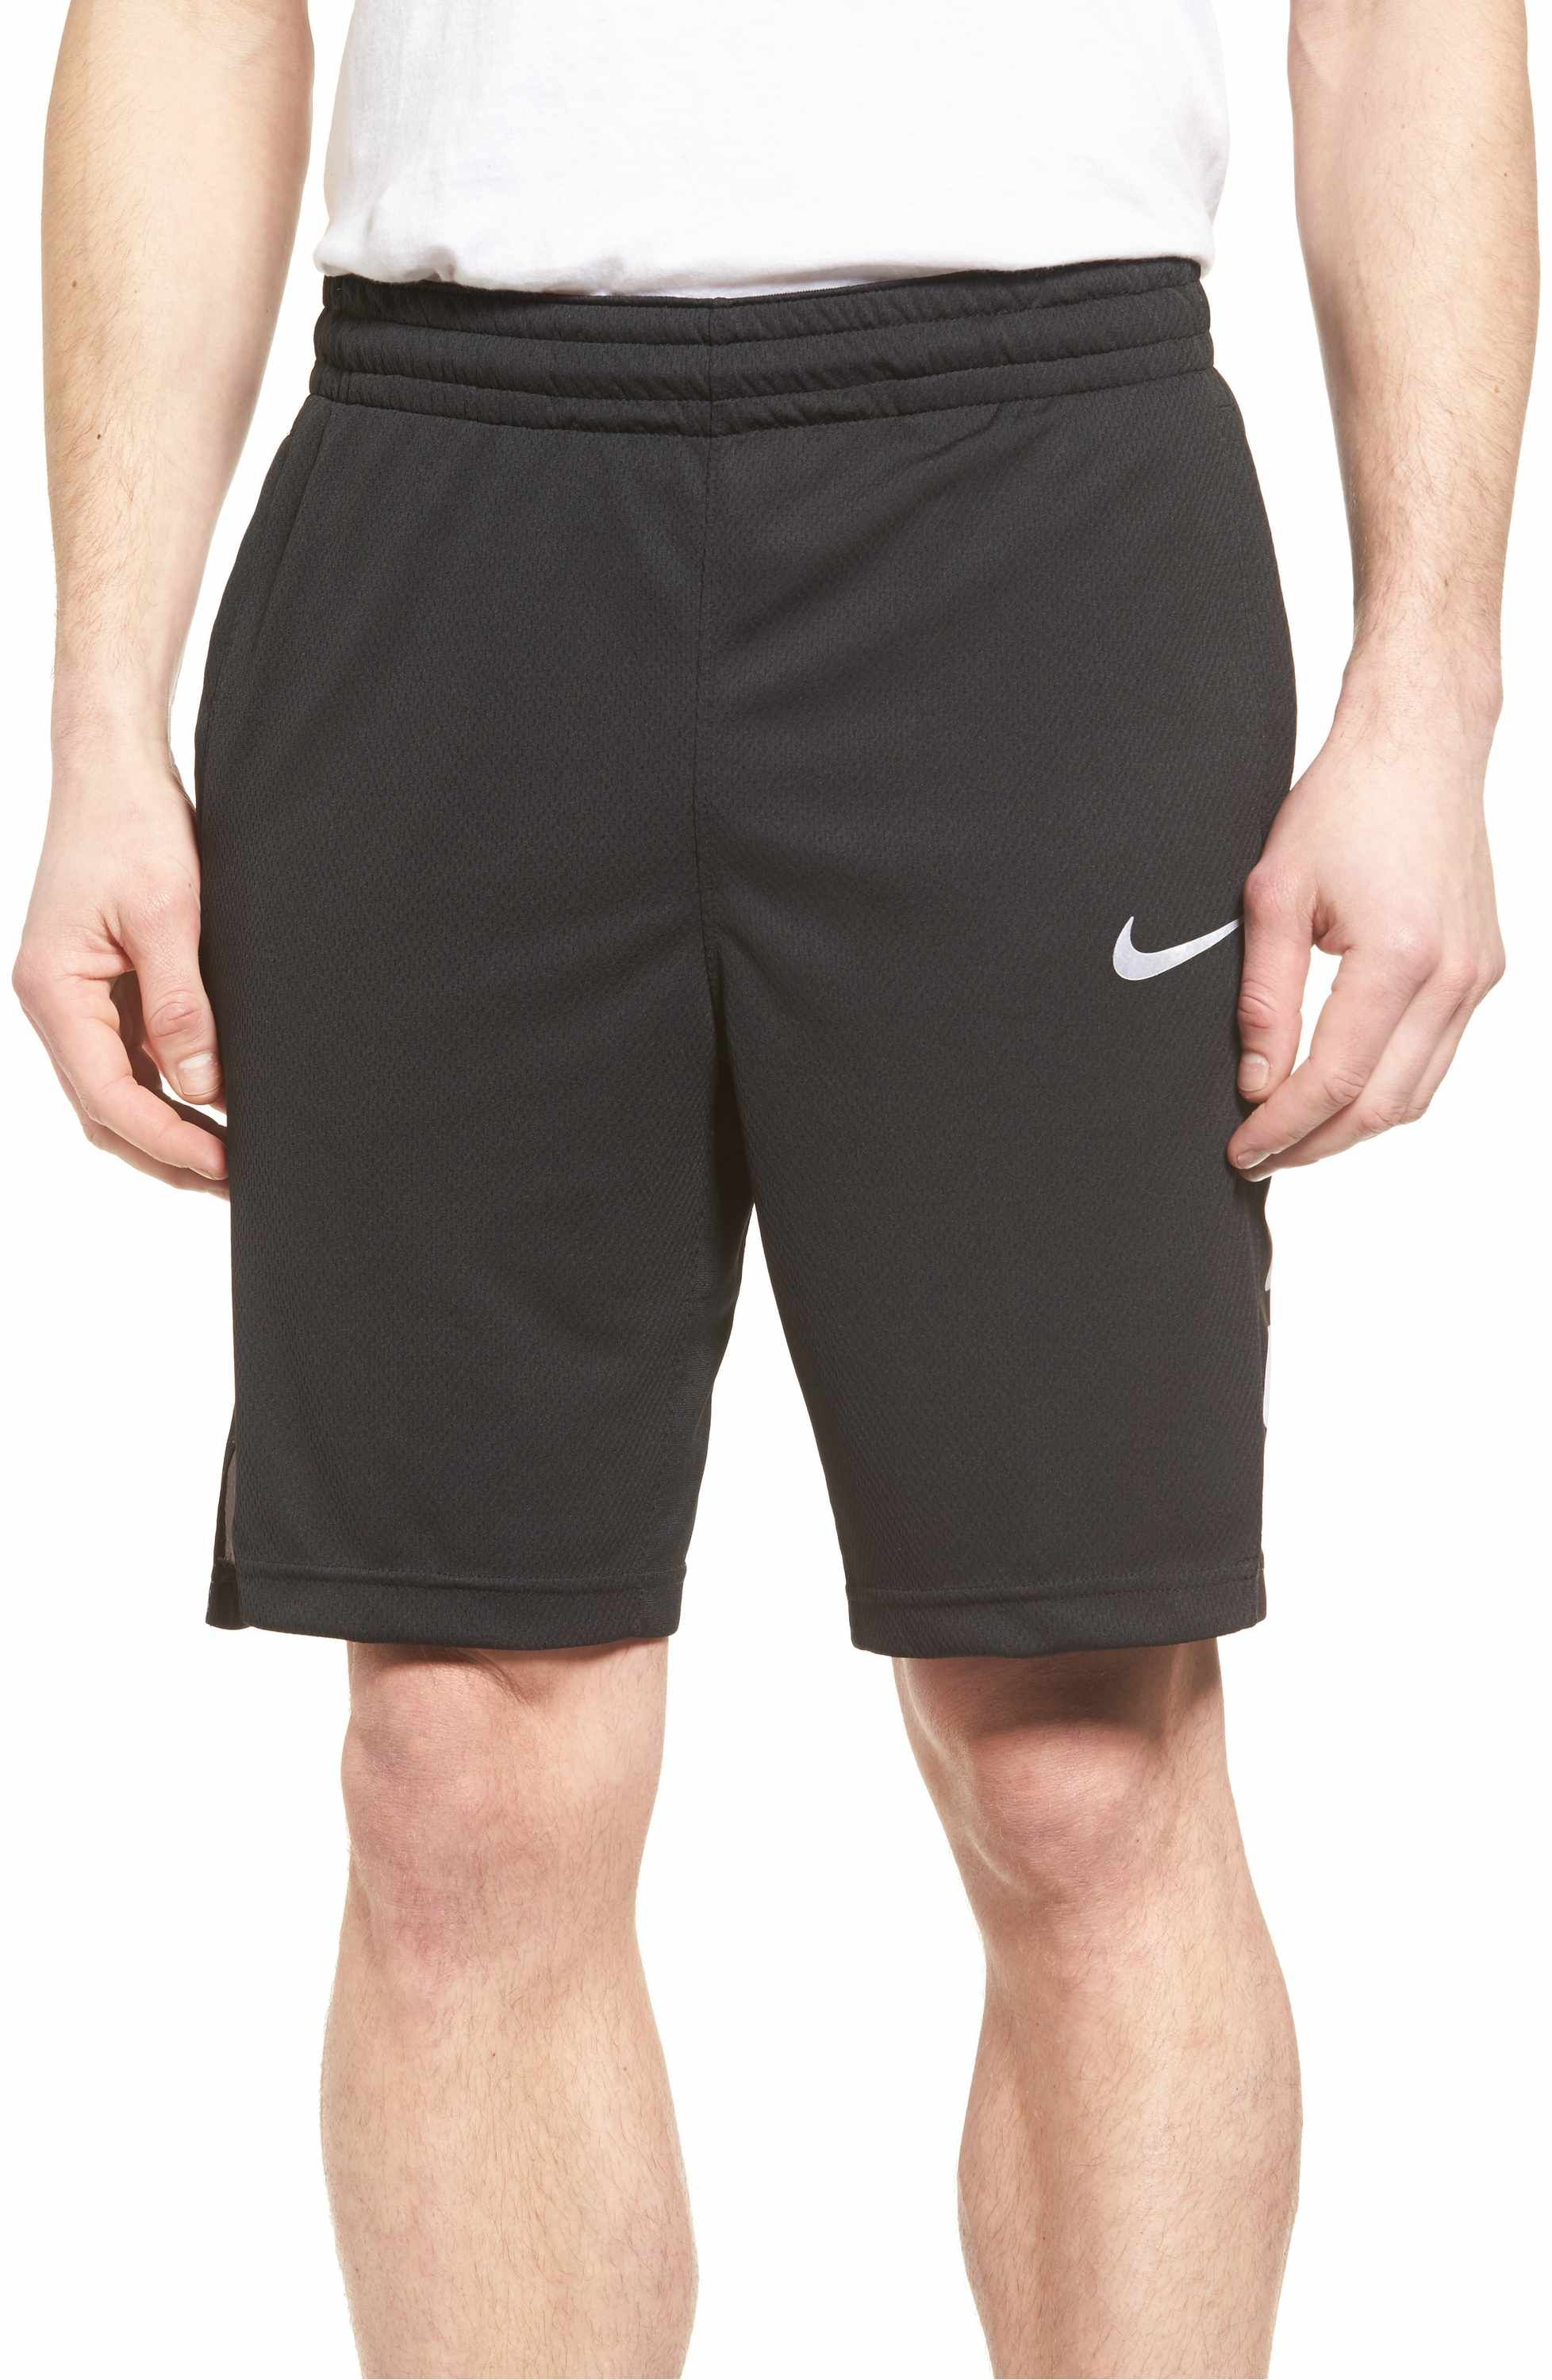 Clearance Collections Sast Sale Online Nike Elite Stripe Basketball Shorts (Regular Retail Price: $45.00) Clearance Enjoy 9BjecPUeL